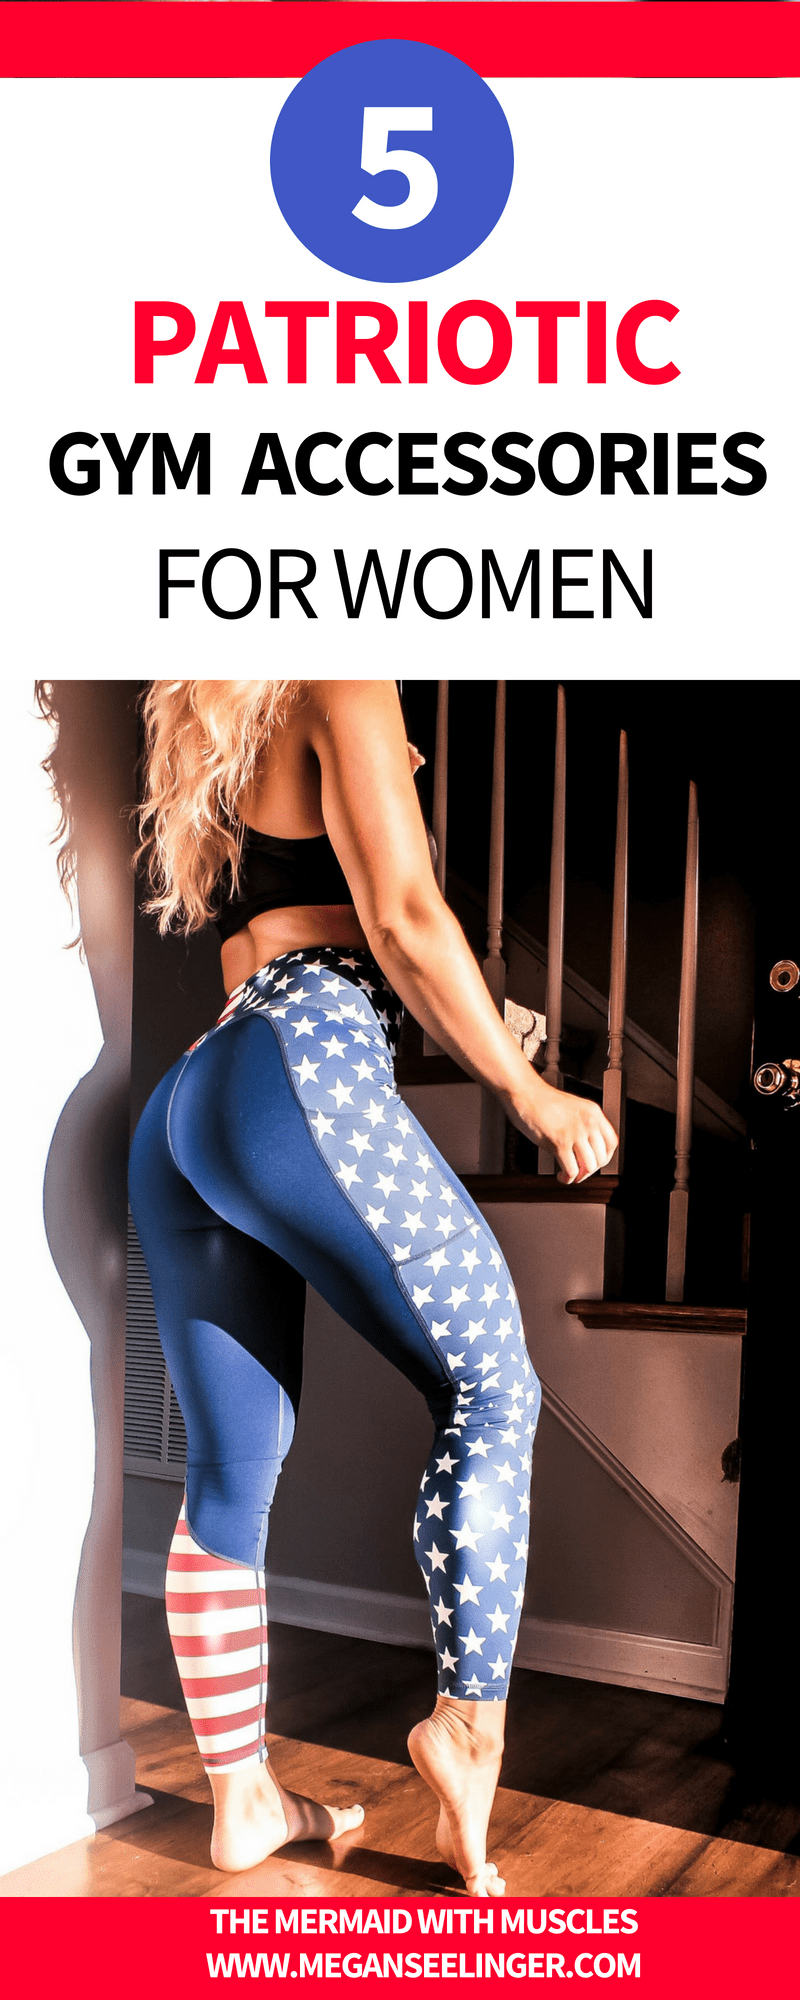 patriotic gym gear for women